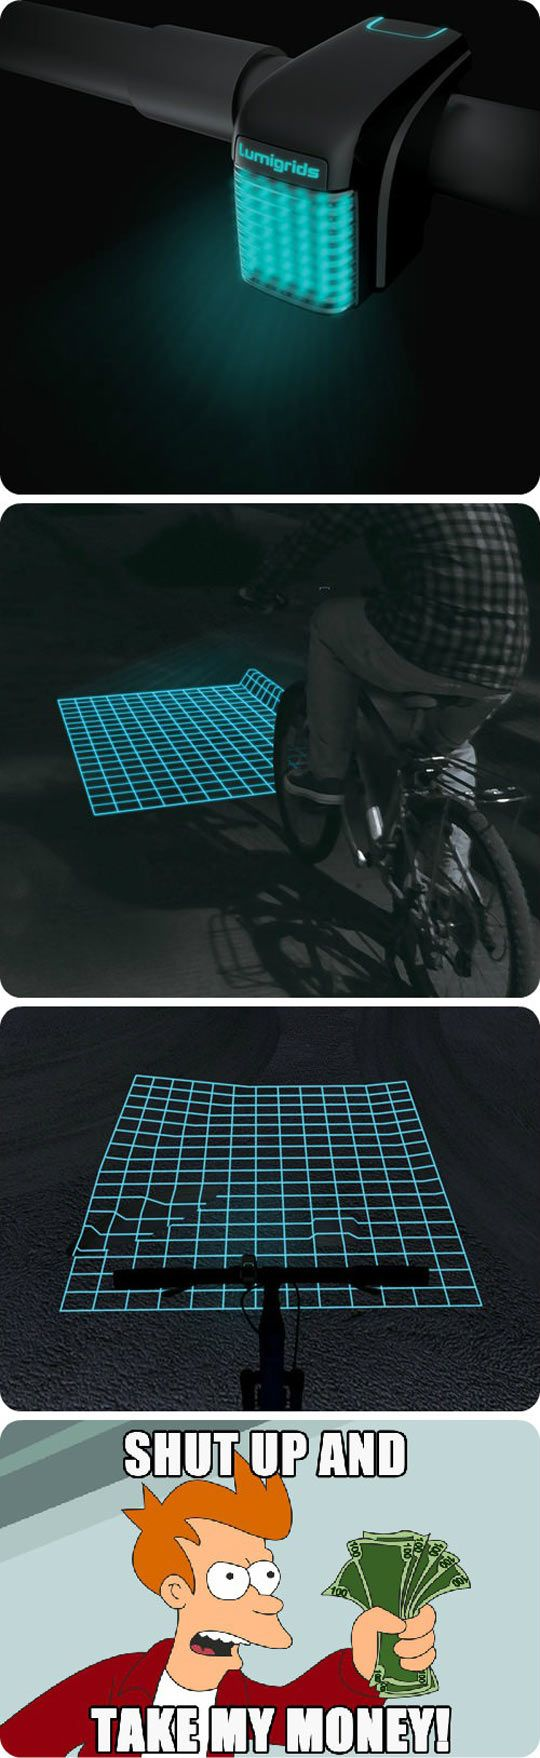 For Those Who Love Night Rides  So Kewl!